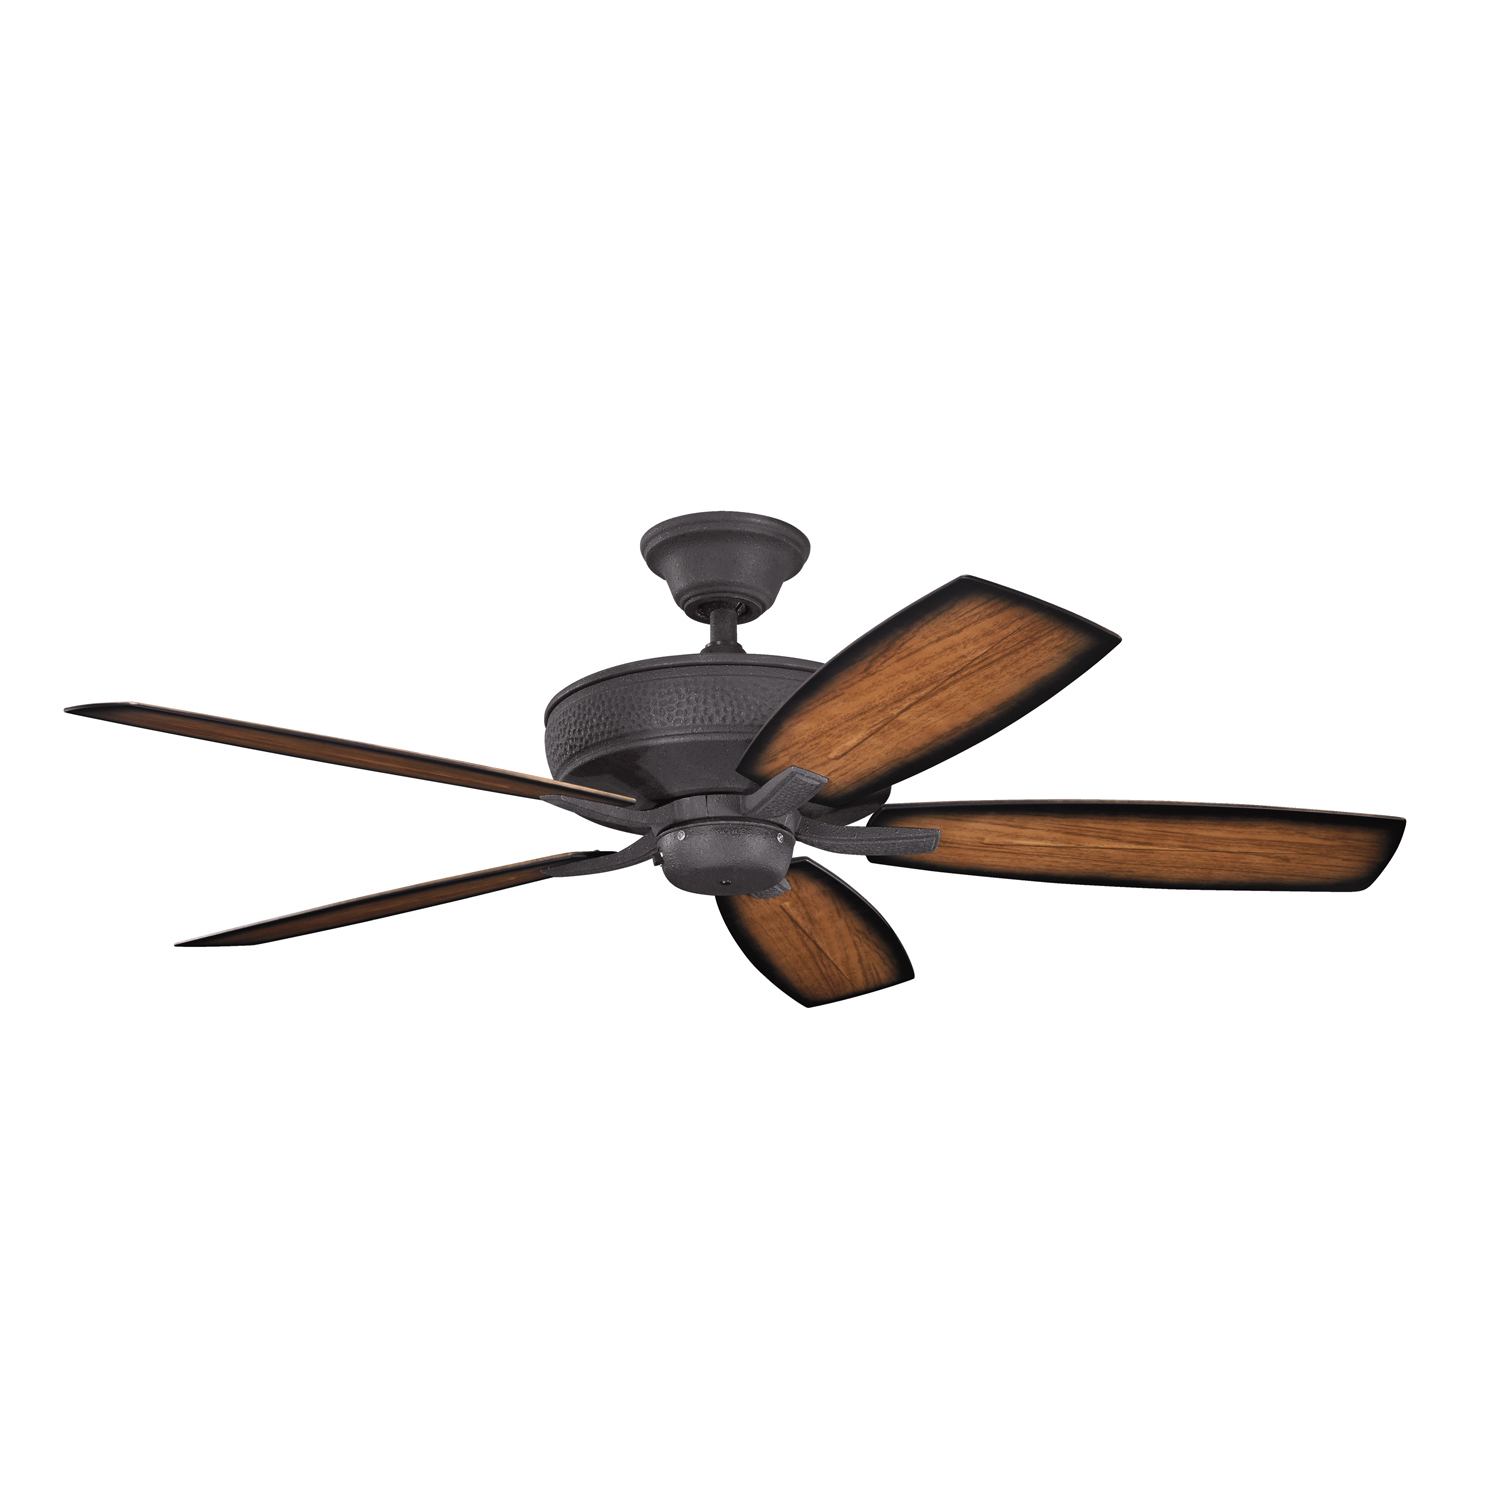 52 inchCeiling Fan from the II Patio collection by Kichler 310103DBK